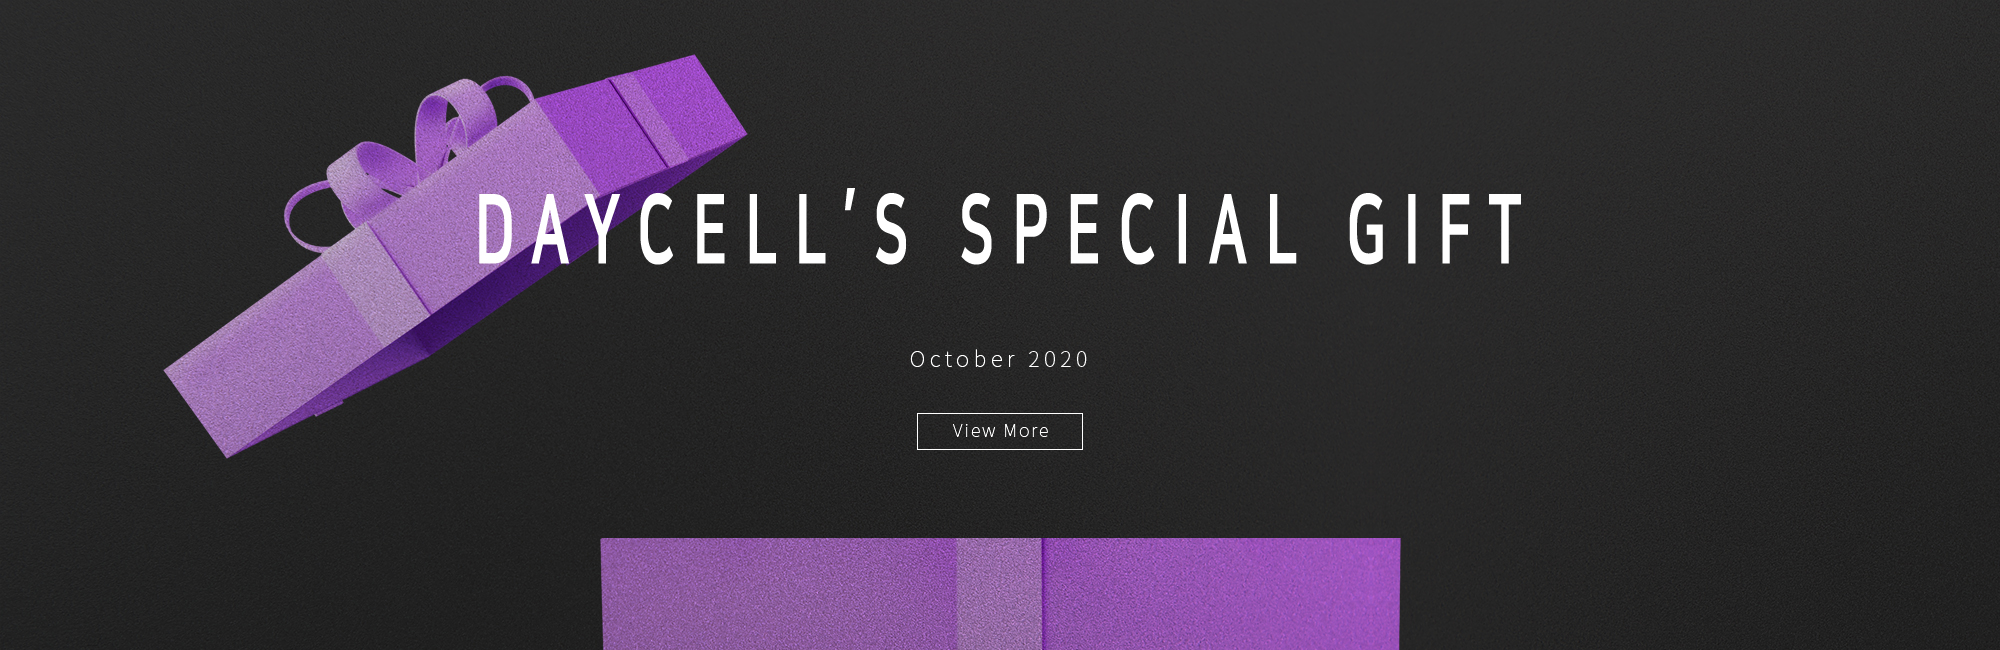 DAYCELL's Special Gift in October